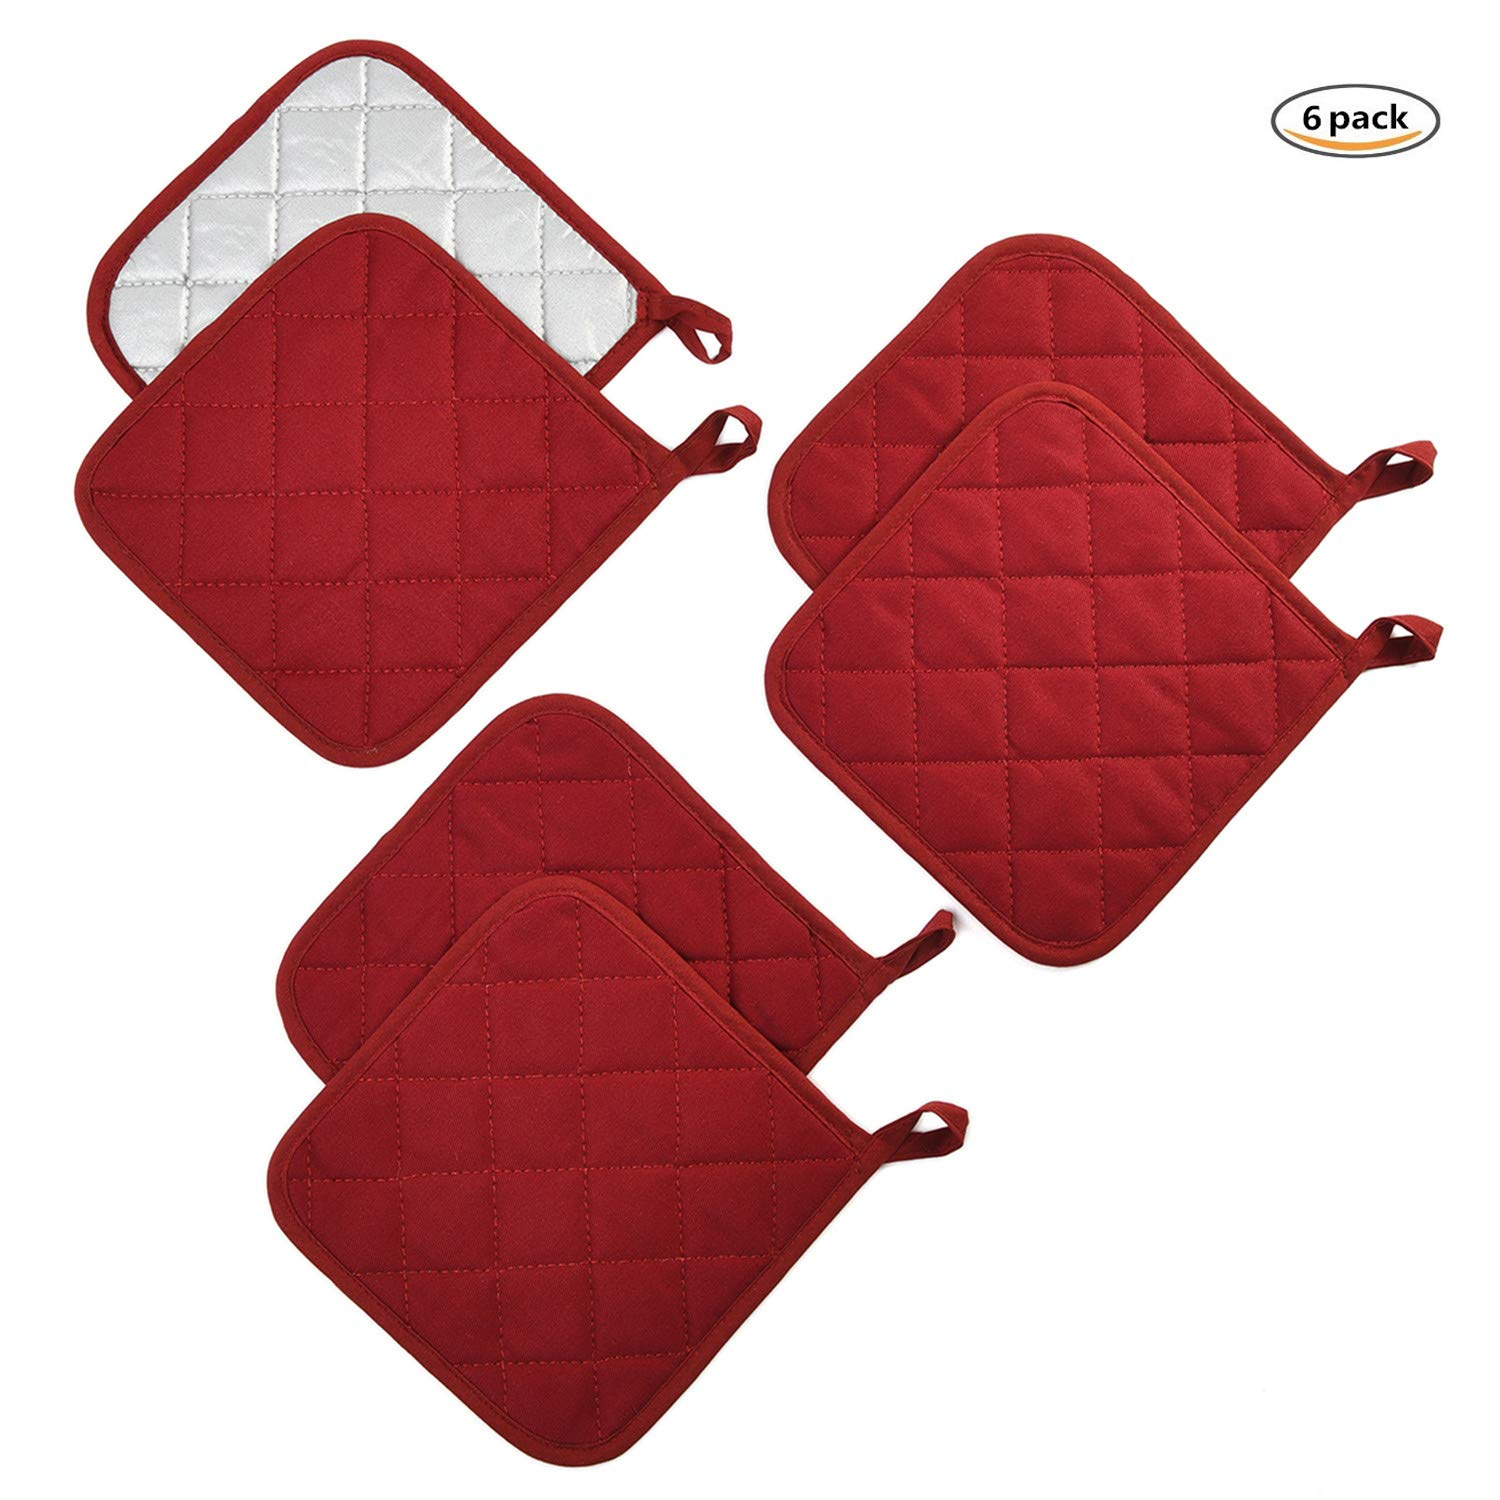 Jennice House Potholders Set Trivets Kitchen Pot Holders Heat Resistant Pure Cotton Coasters Hot Pads Pot Holders Set of 6 for Everyday Cooking and Baking by 7 x 7 Inch (Wine) by Jennice House